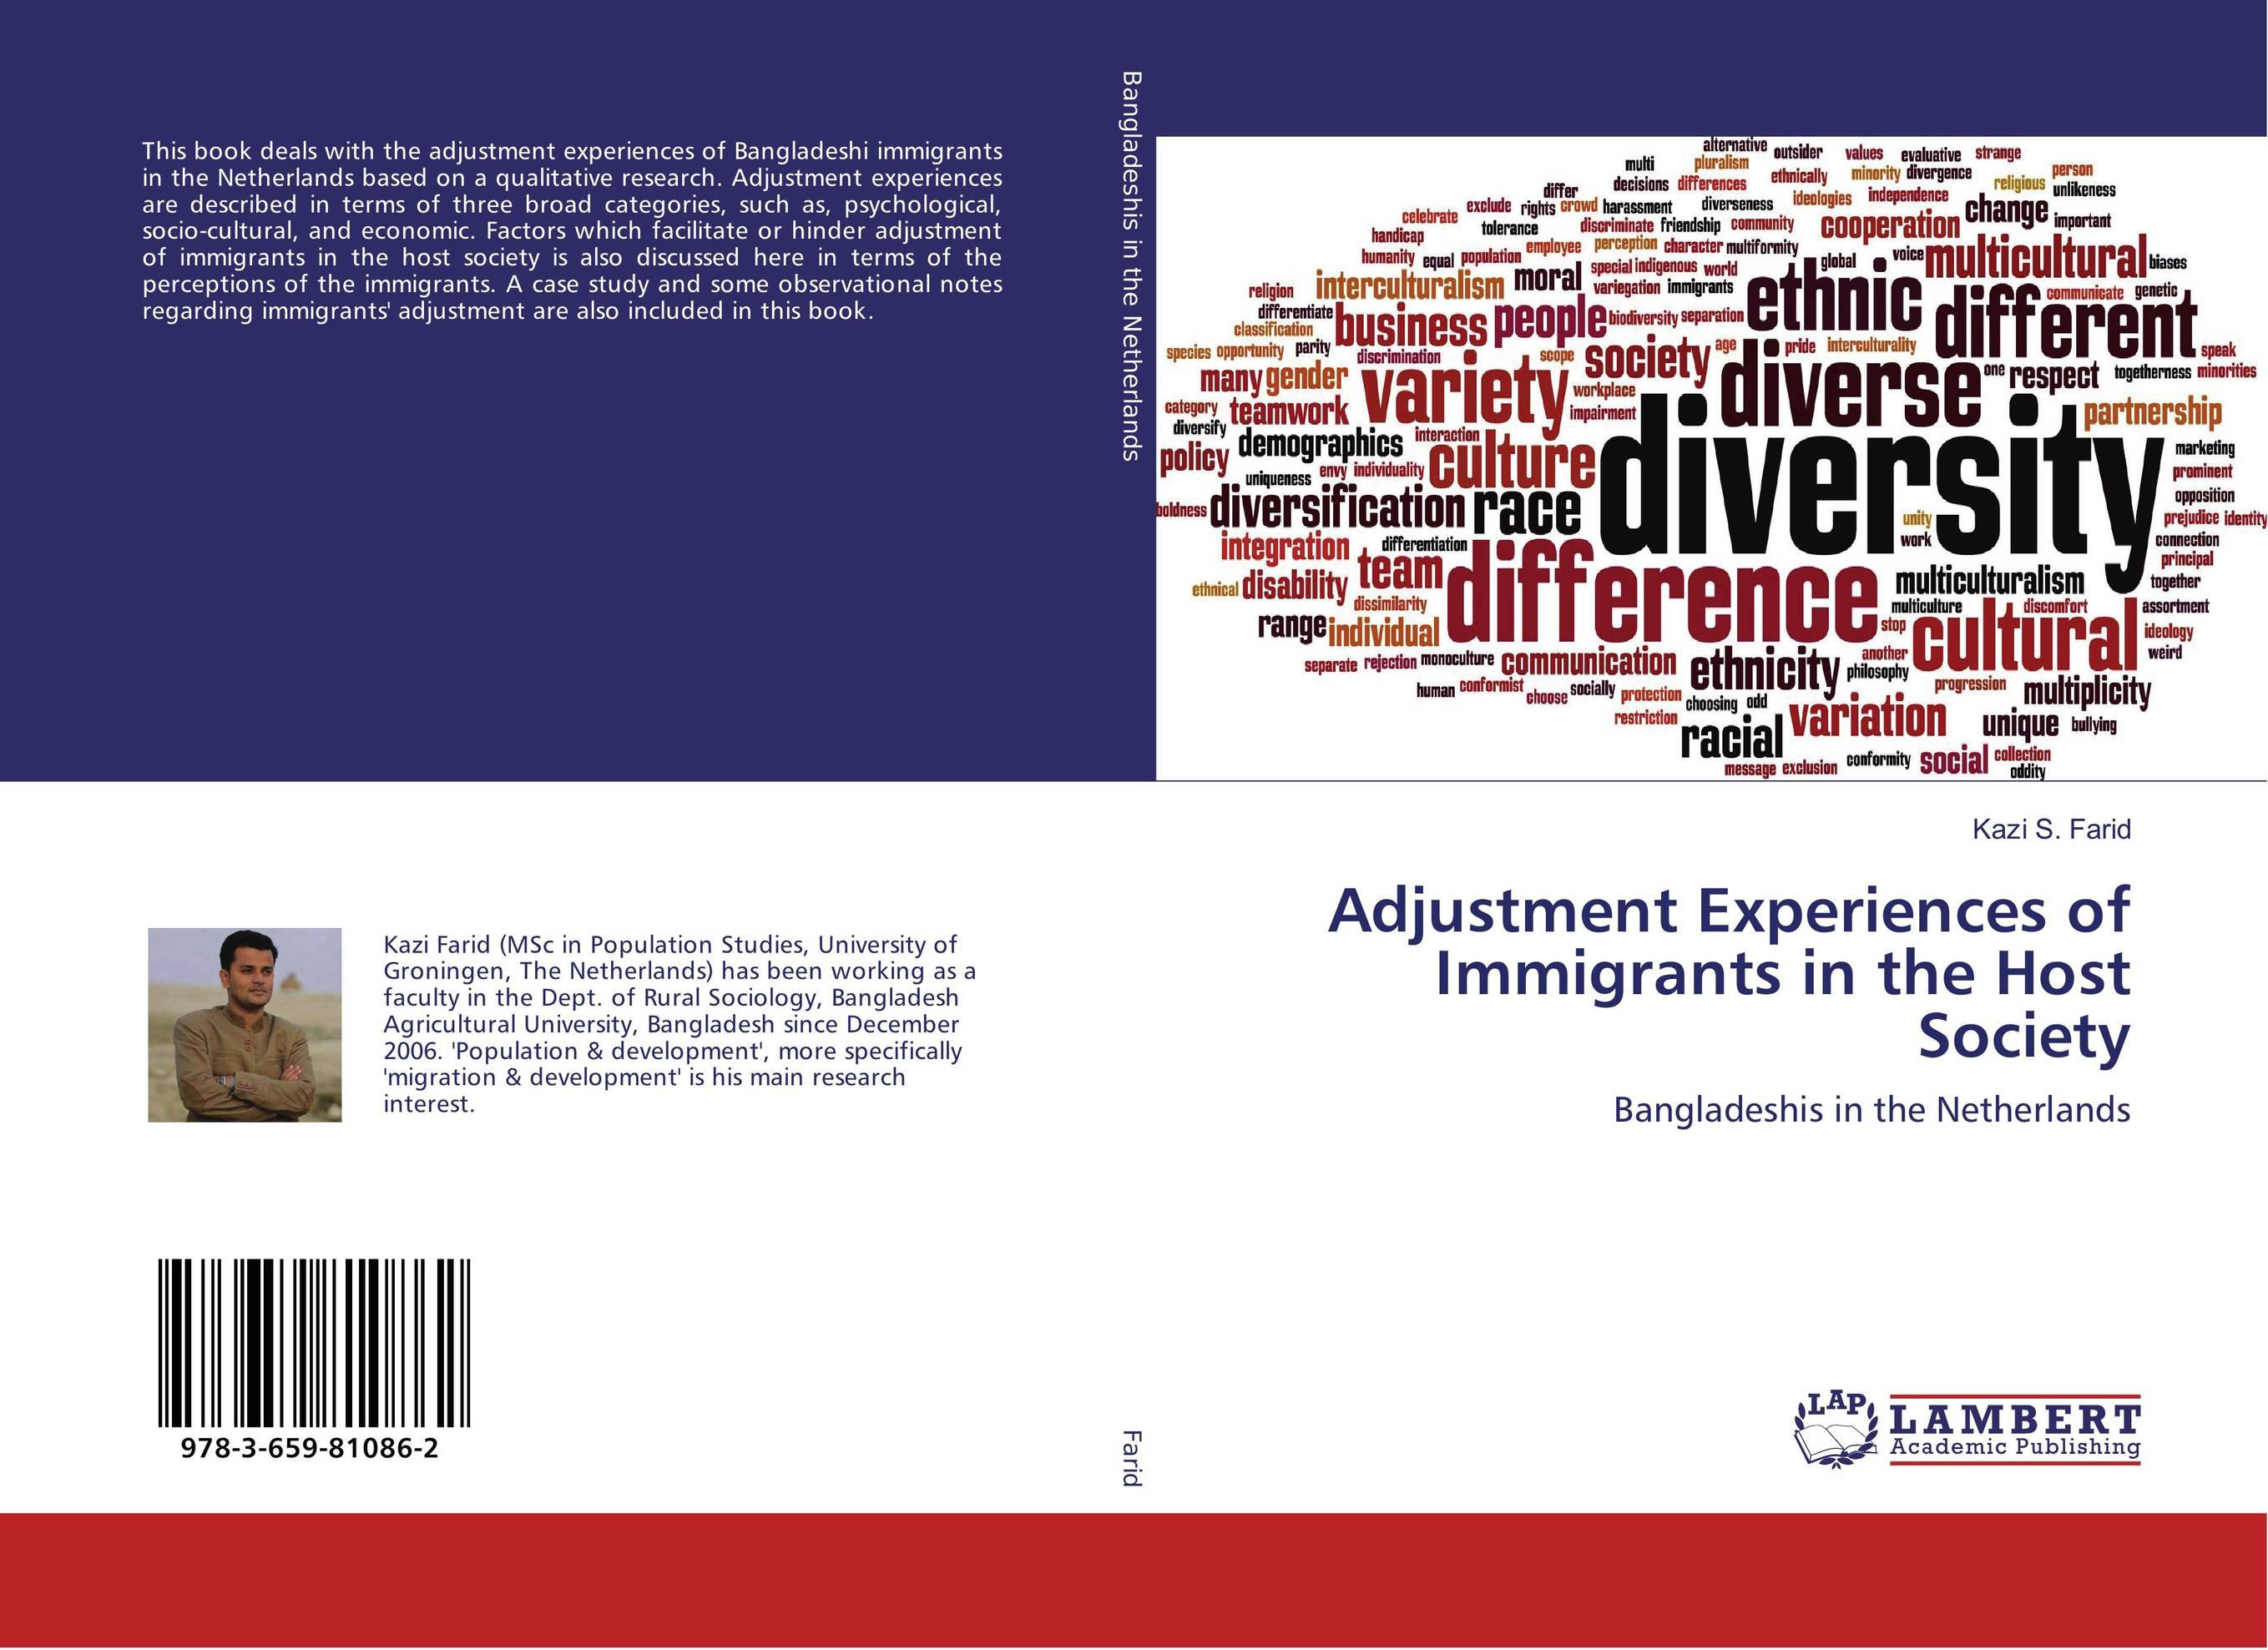 Adjustment Experiences of Immigrants in the Host Society voluntary associations in tsarist russia – science patriotism and civil society